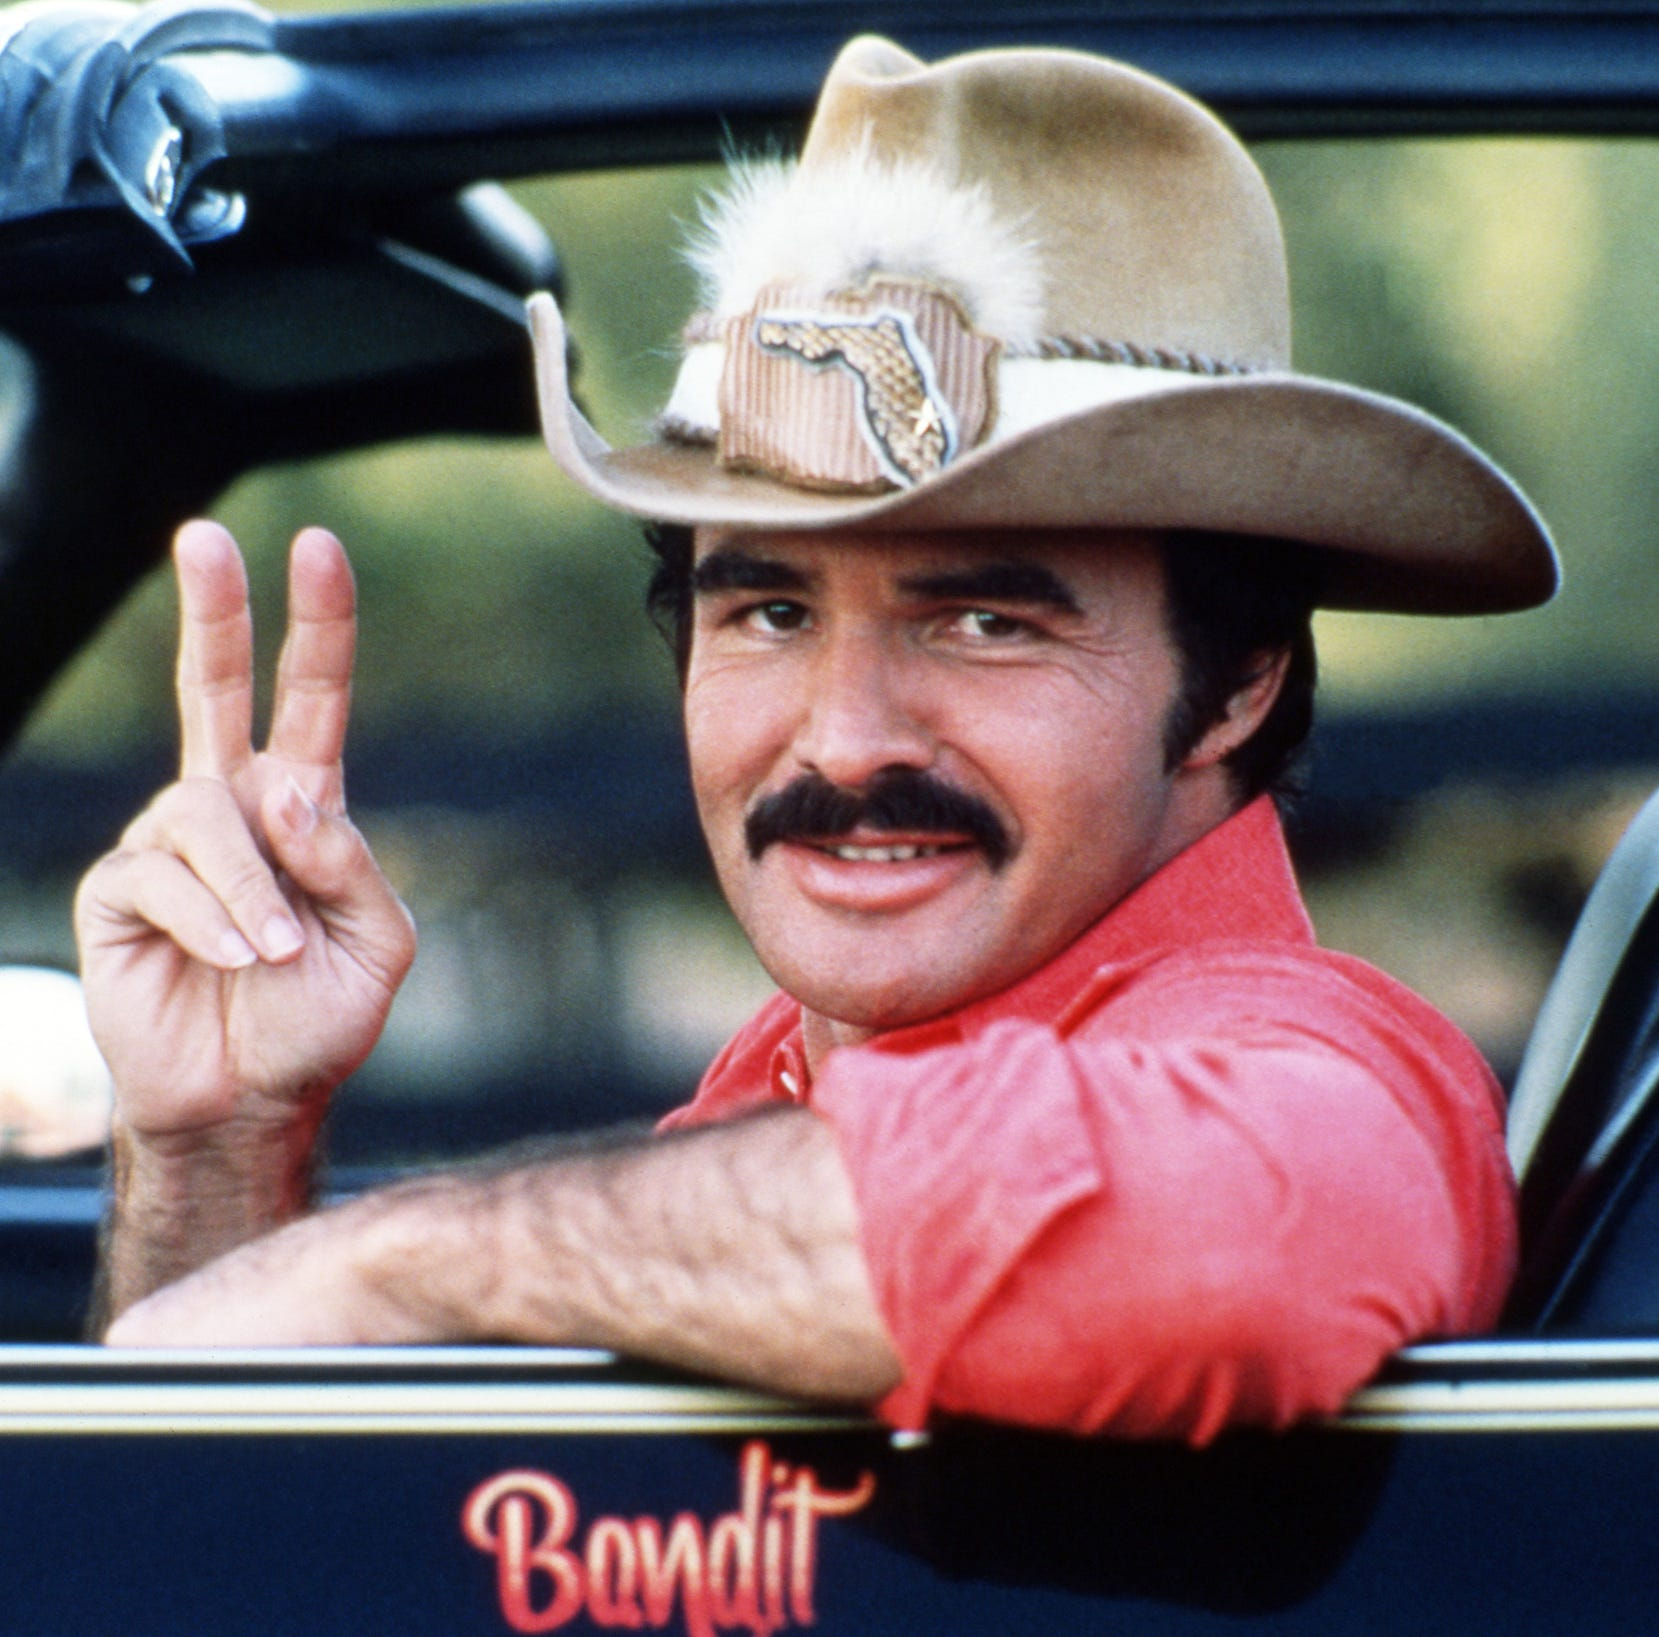 For the South, 'Smokey and the Bandit' was top movie of 1977 | Southern Perspective